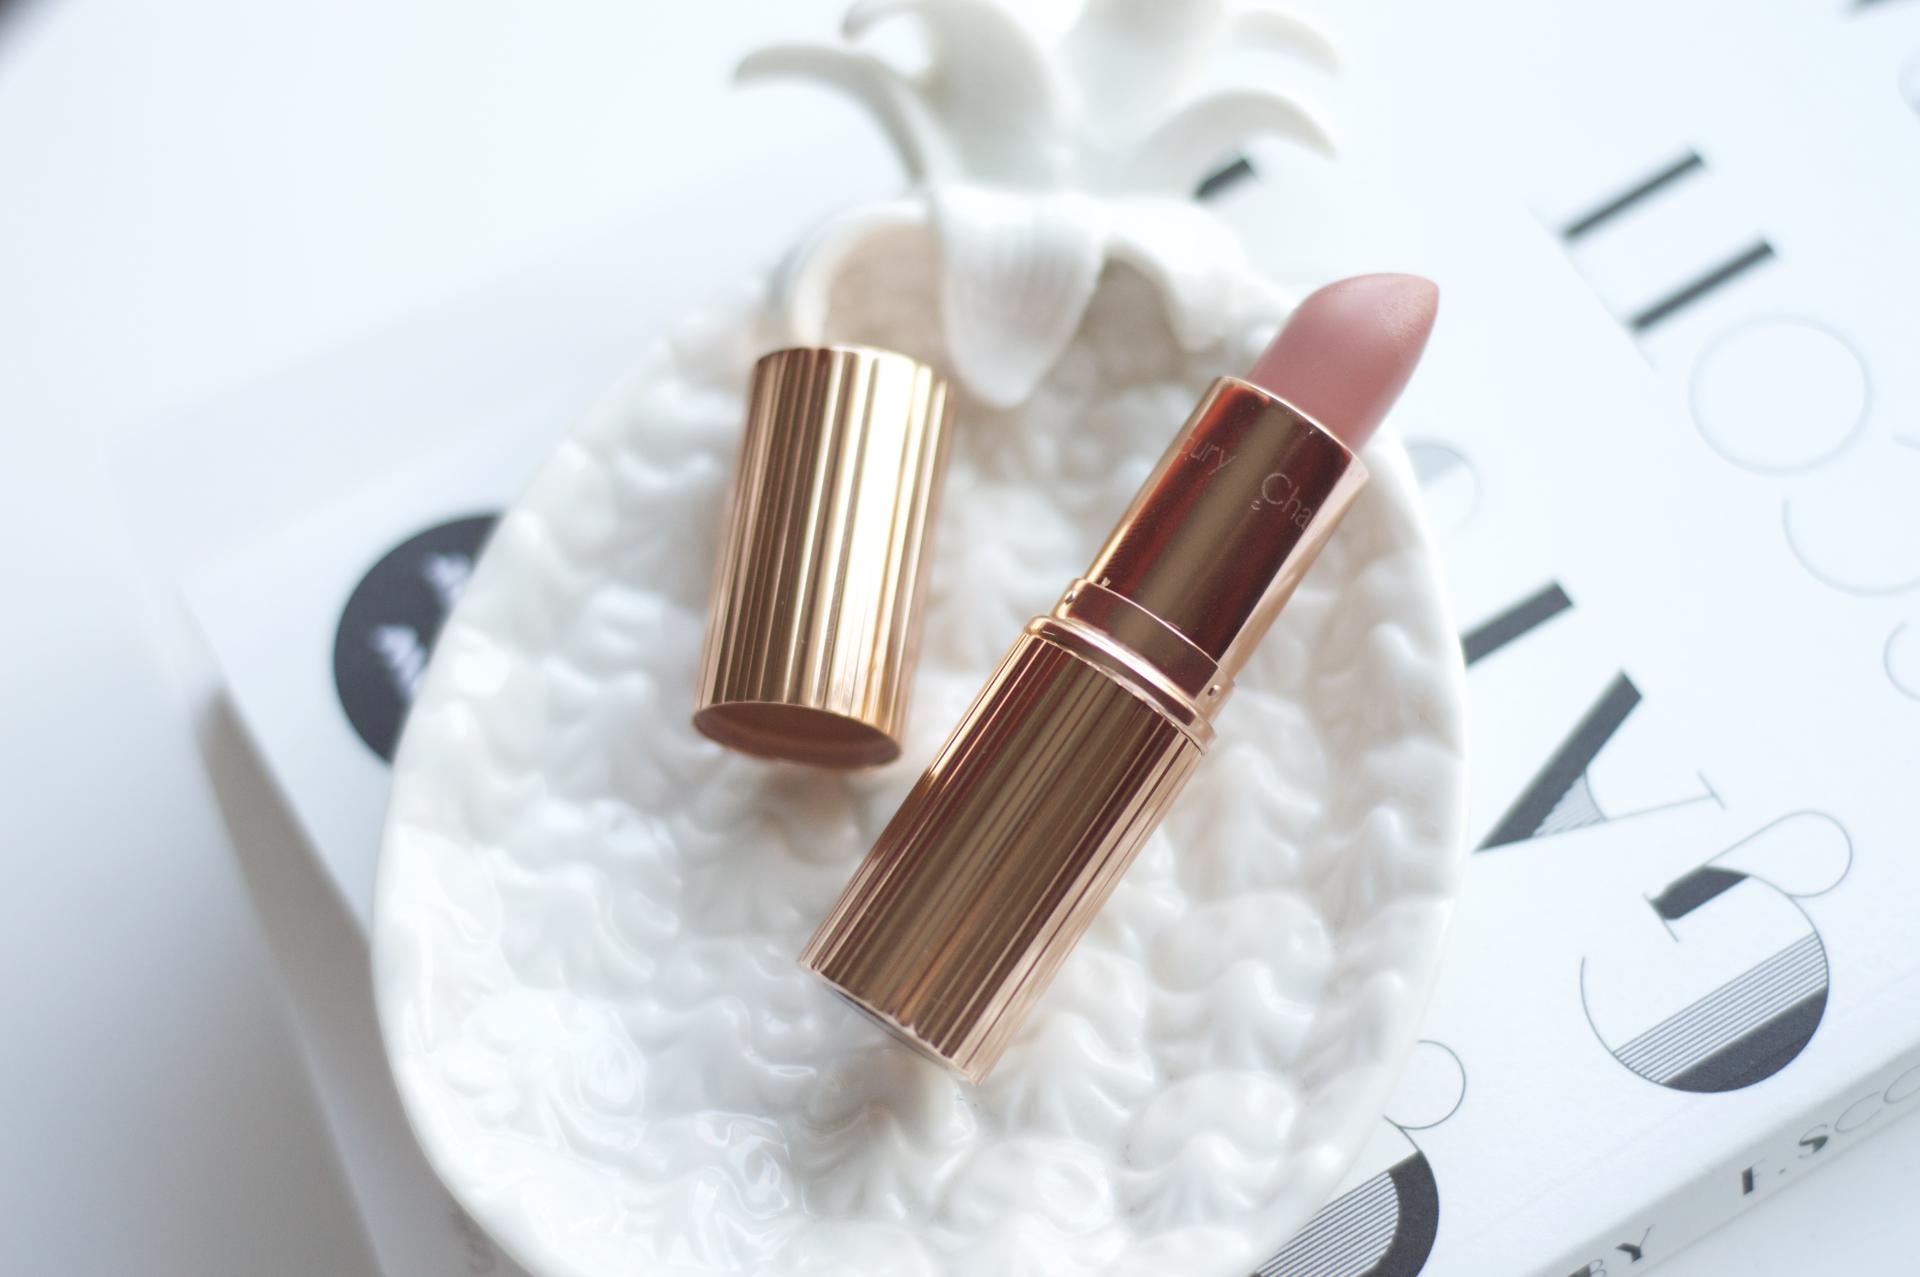 Made From Beauty Charlotte Tilbury K.I.S.S.I.N.G Lipstick in Bitch Perfect Flat